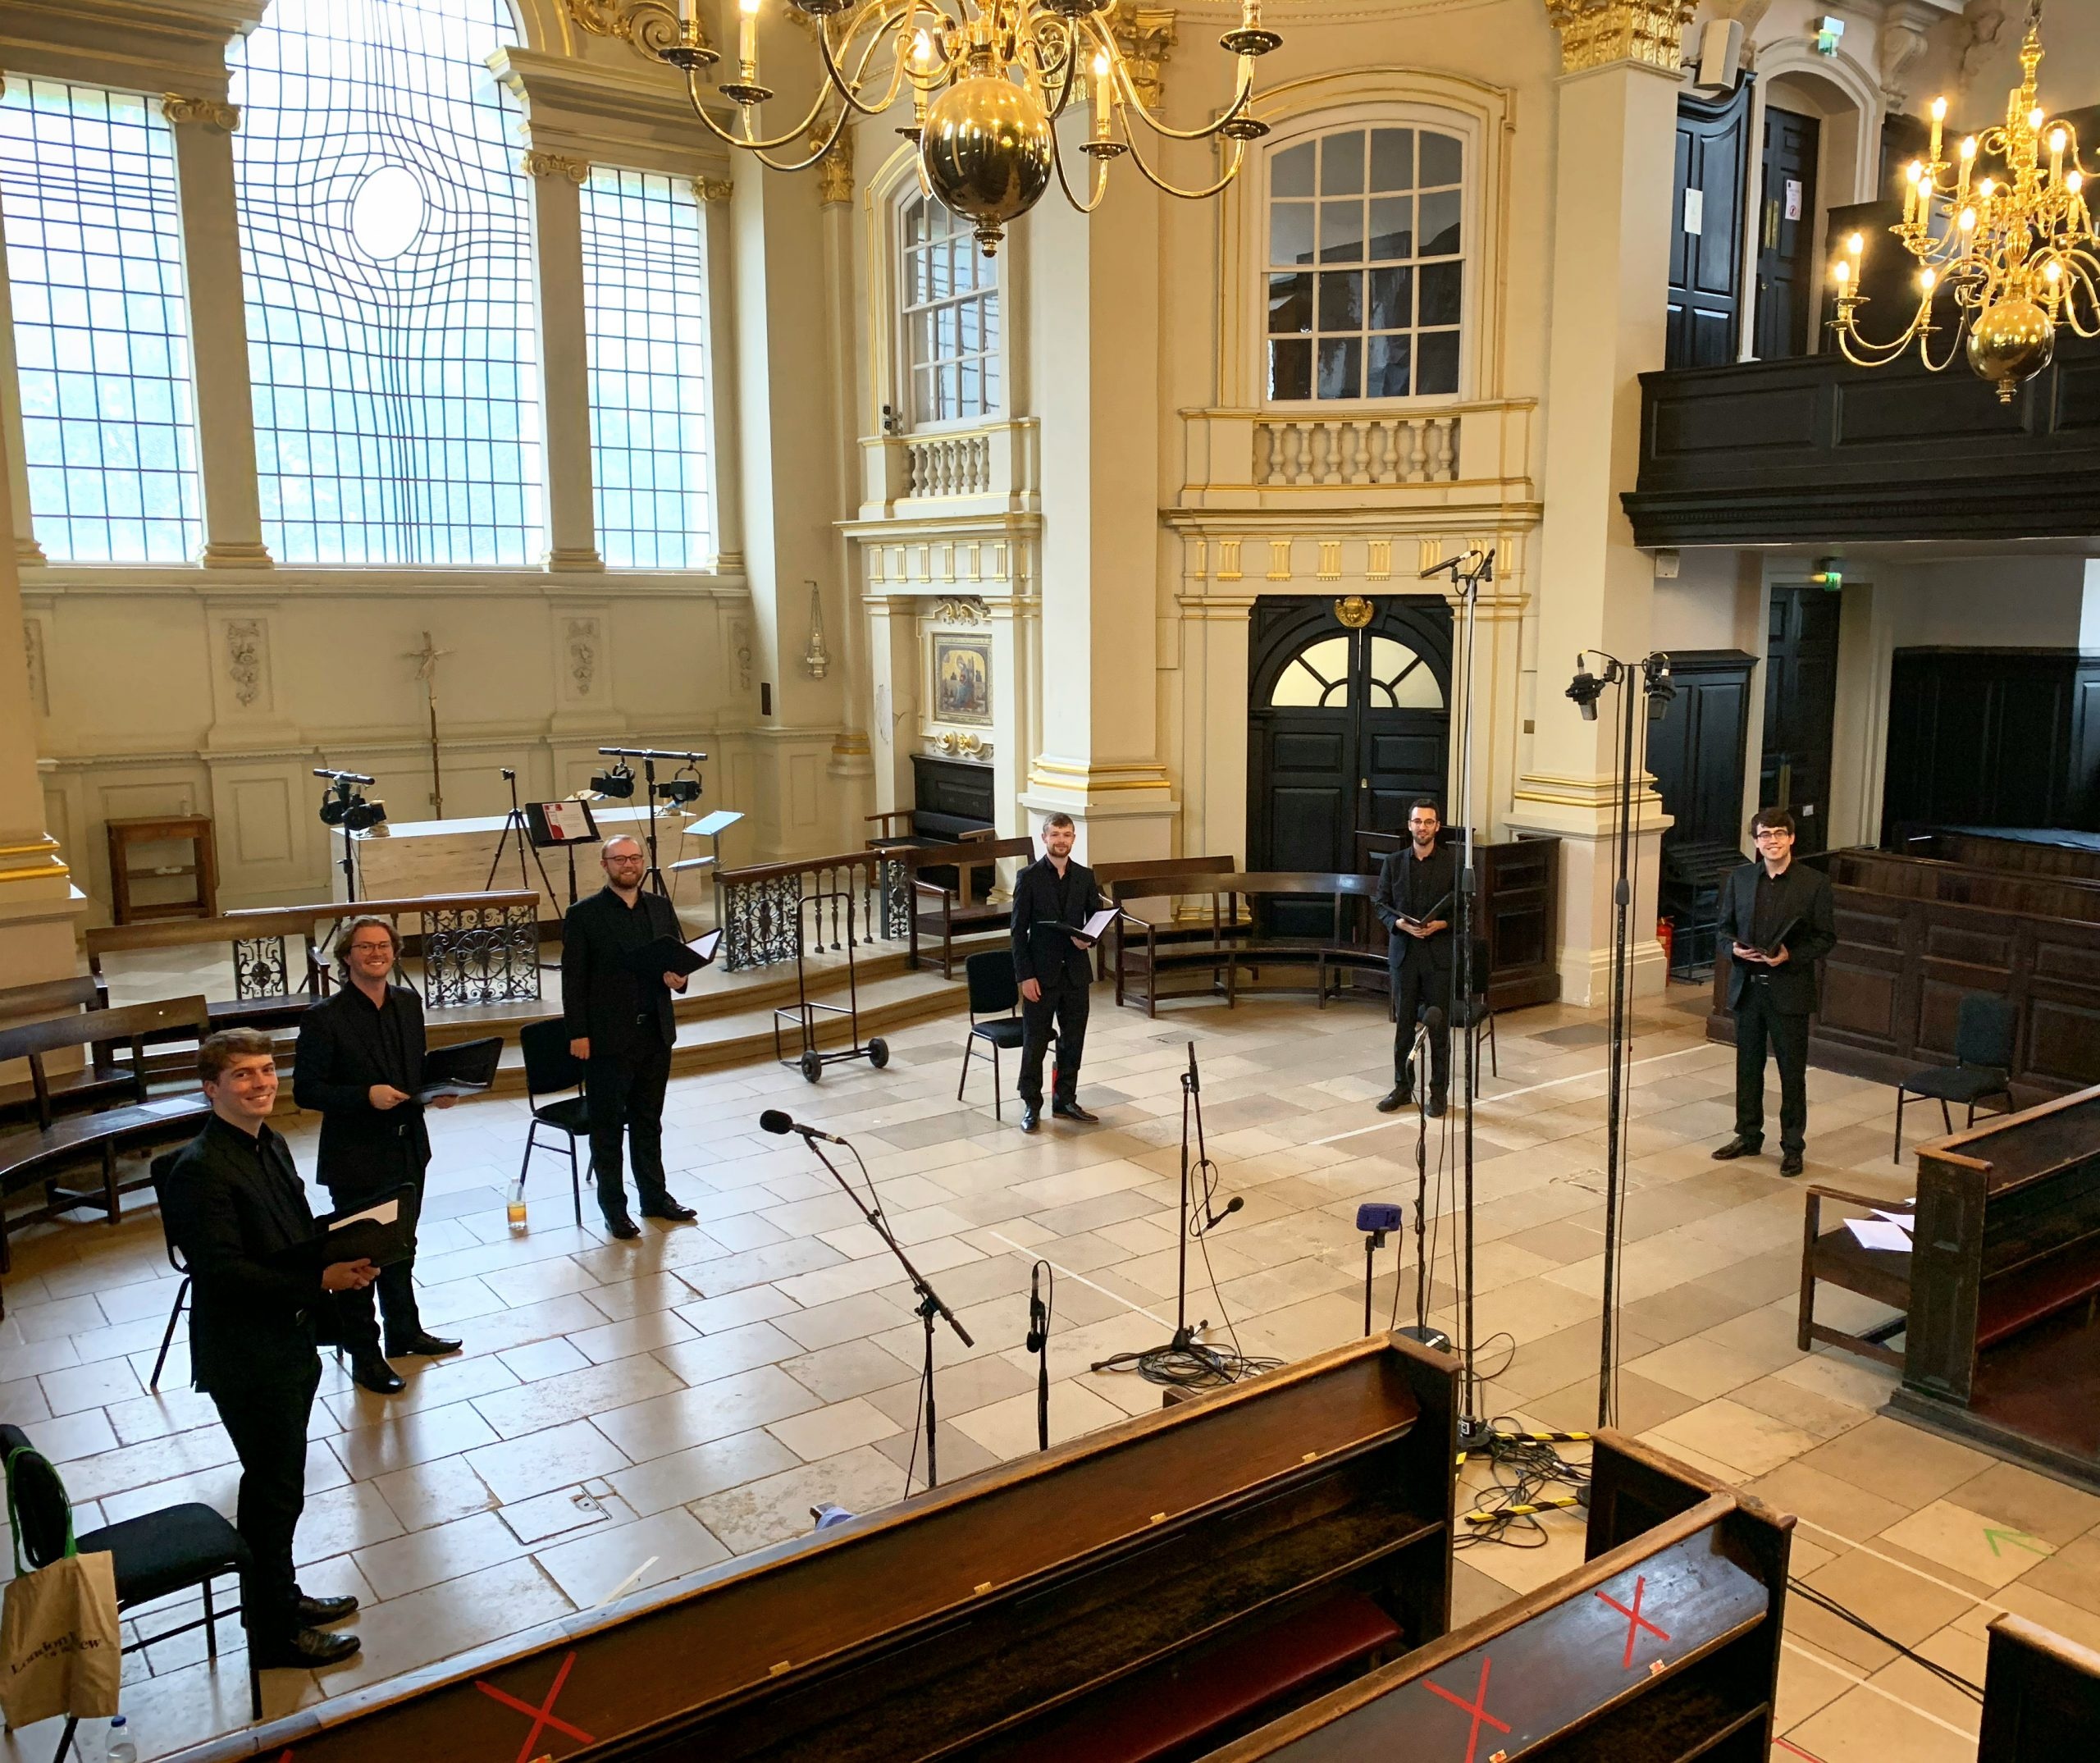 The team at St. Martin-in-the-fields, ready for perform Live on BBC Radio 3's Choral Evensong.